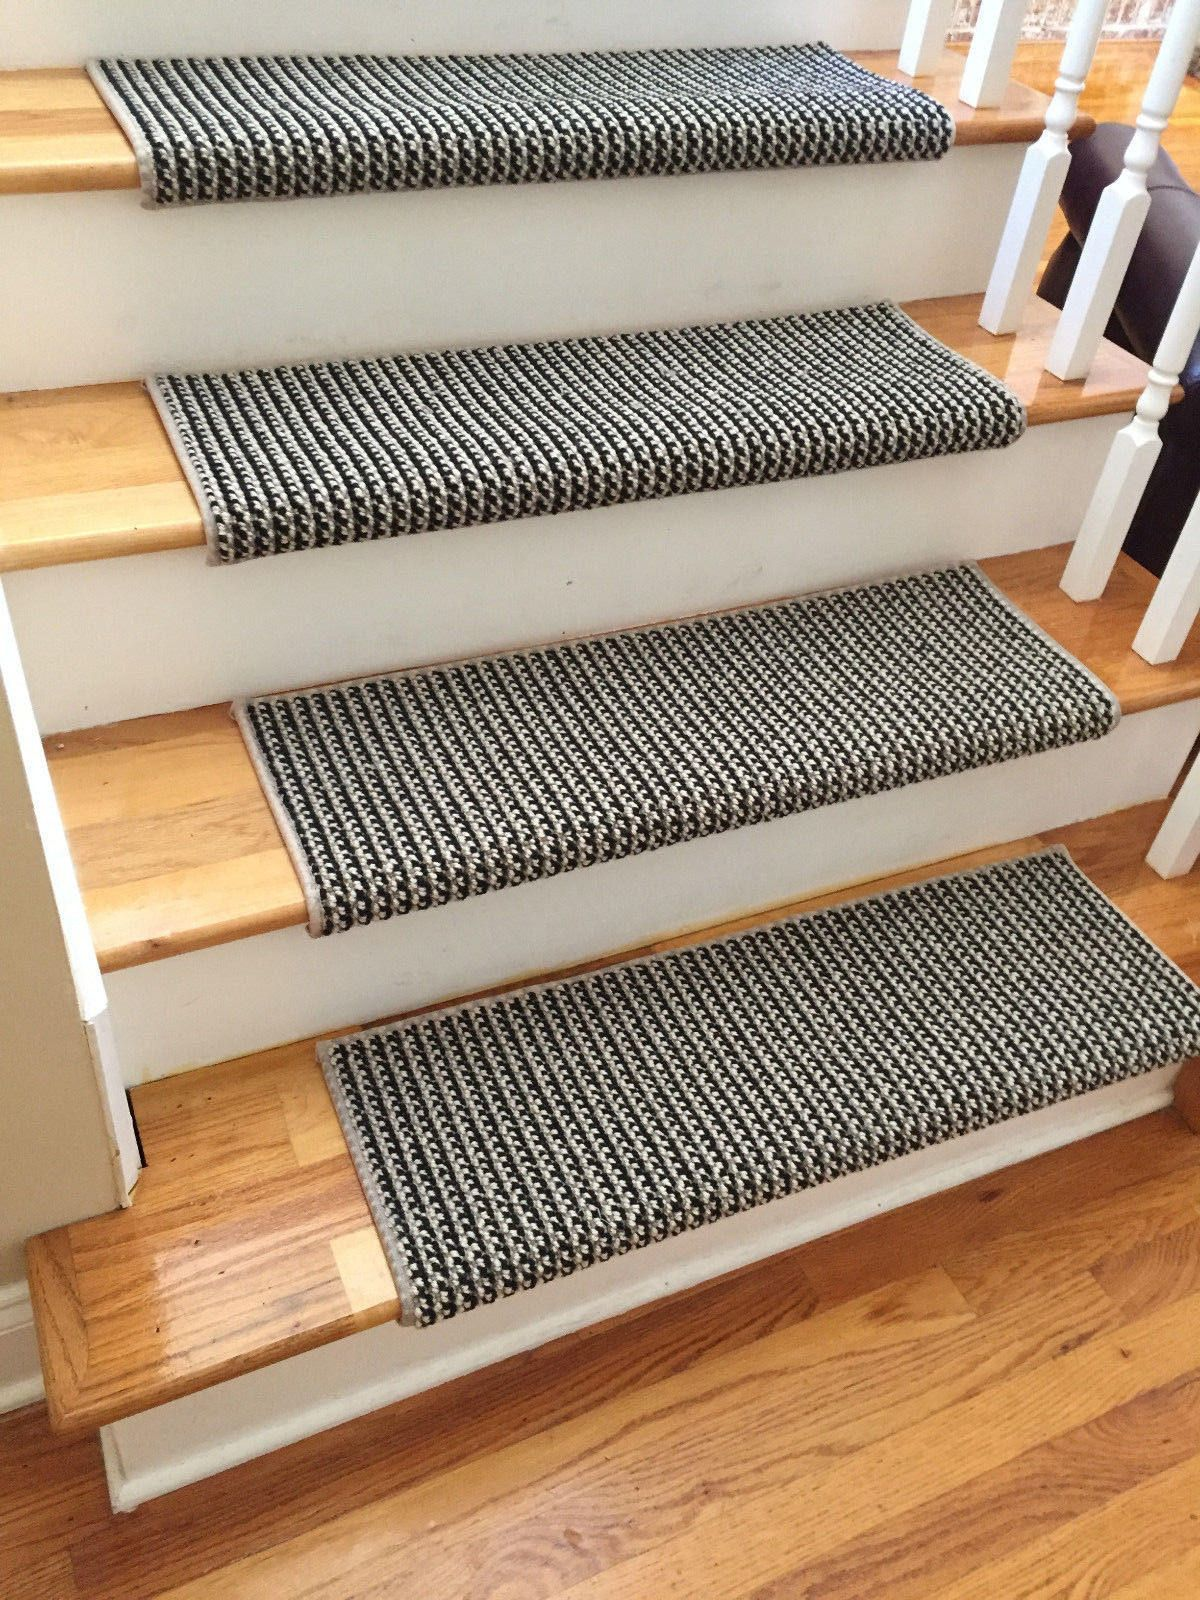 Black Jack 100 New Zealand Wool True Bullnose™ Carpet Stair | Stair Treads For Hardwood Stairs | Curved Staircase | Stair Nosing | Carpet Stair | Risers | Non Slip